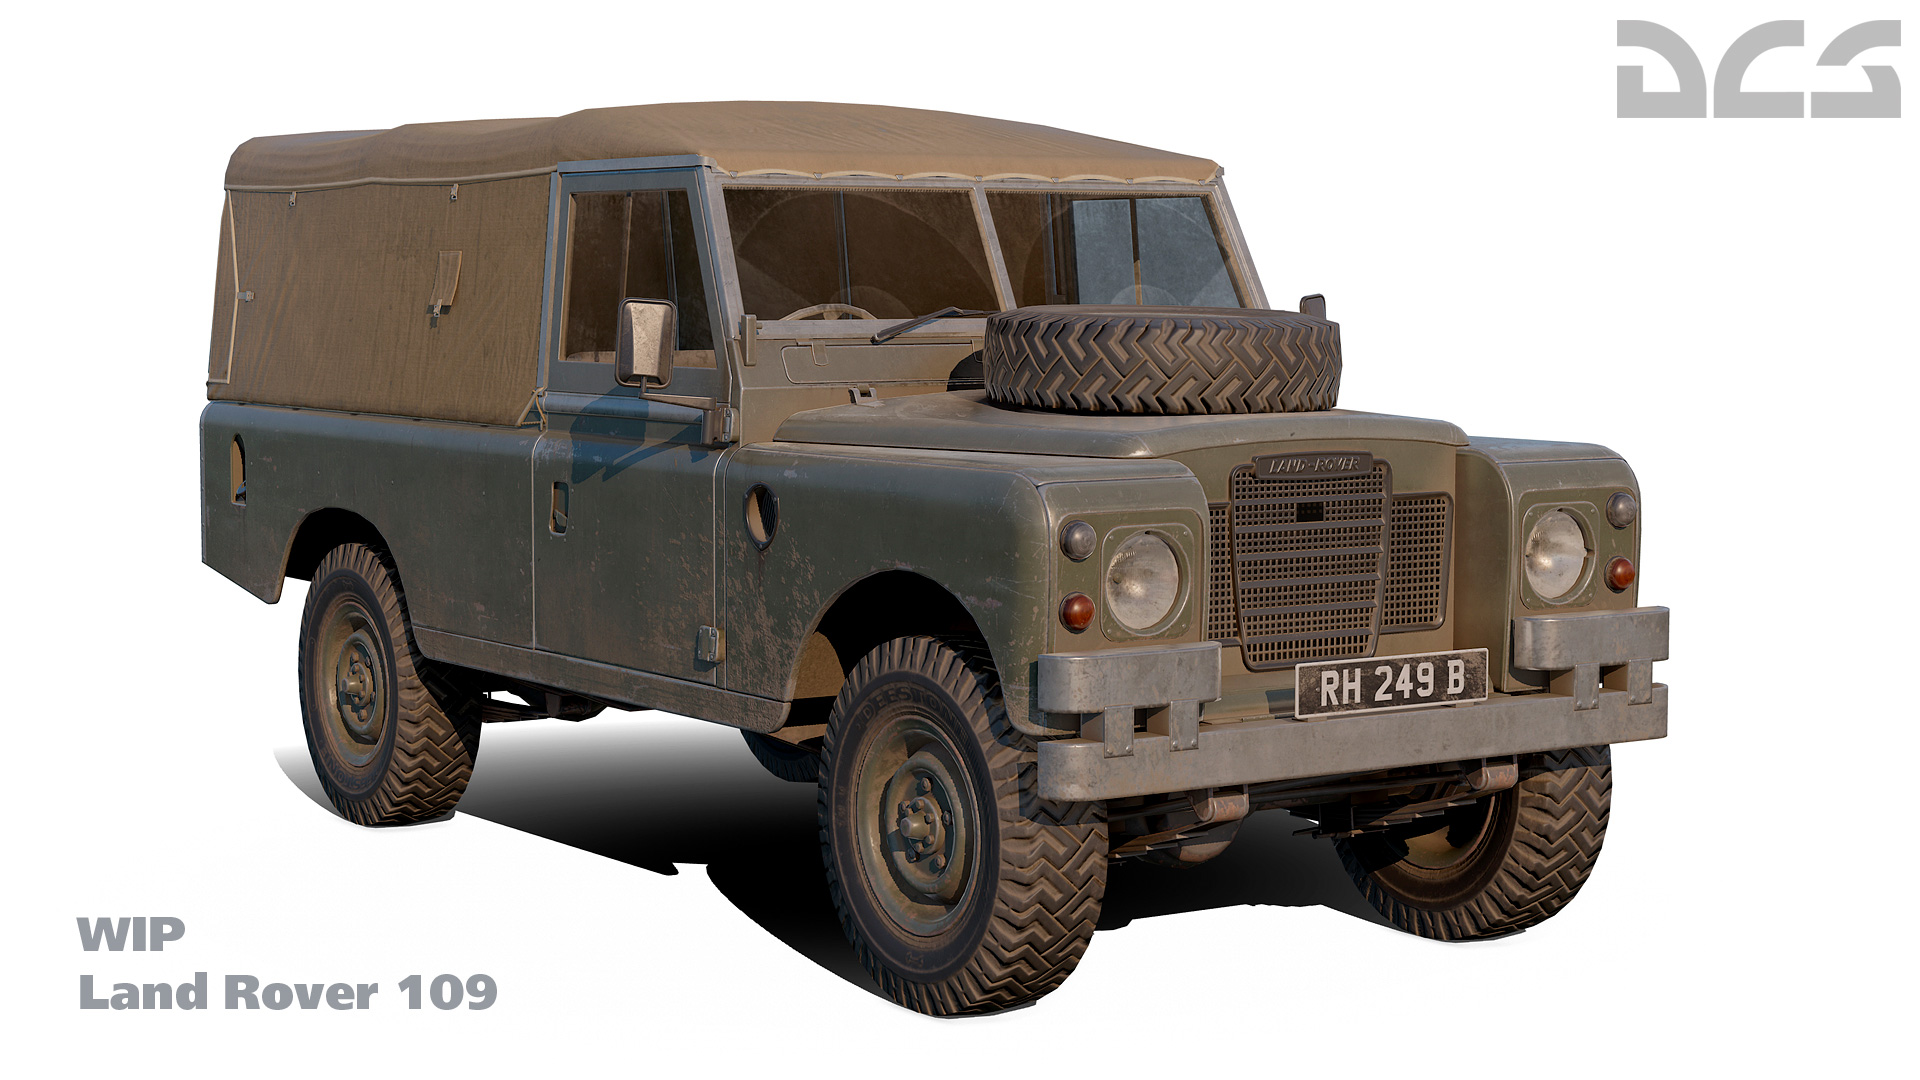 IMAGE(https://www.digitalcombatsimulator.com/upload/iblock/66f/land_rover_109_s3_1.jpg?bx_sender_conversion_id=608033)